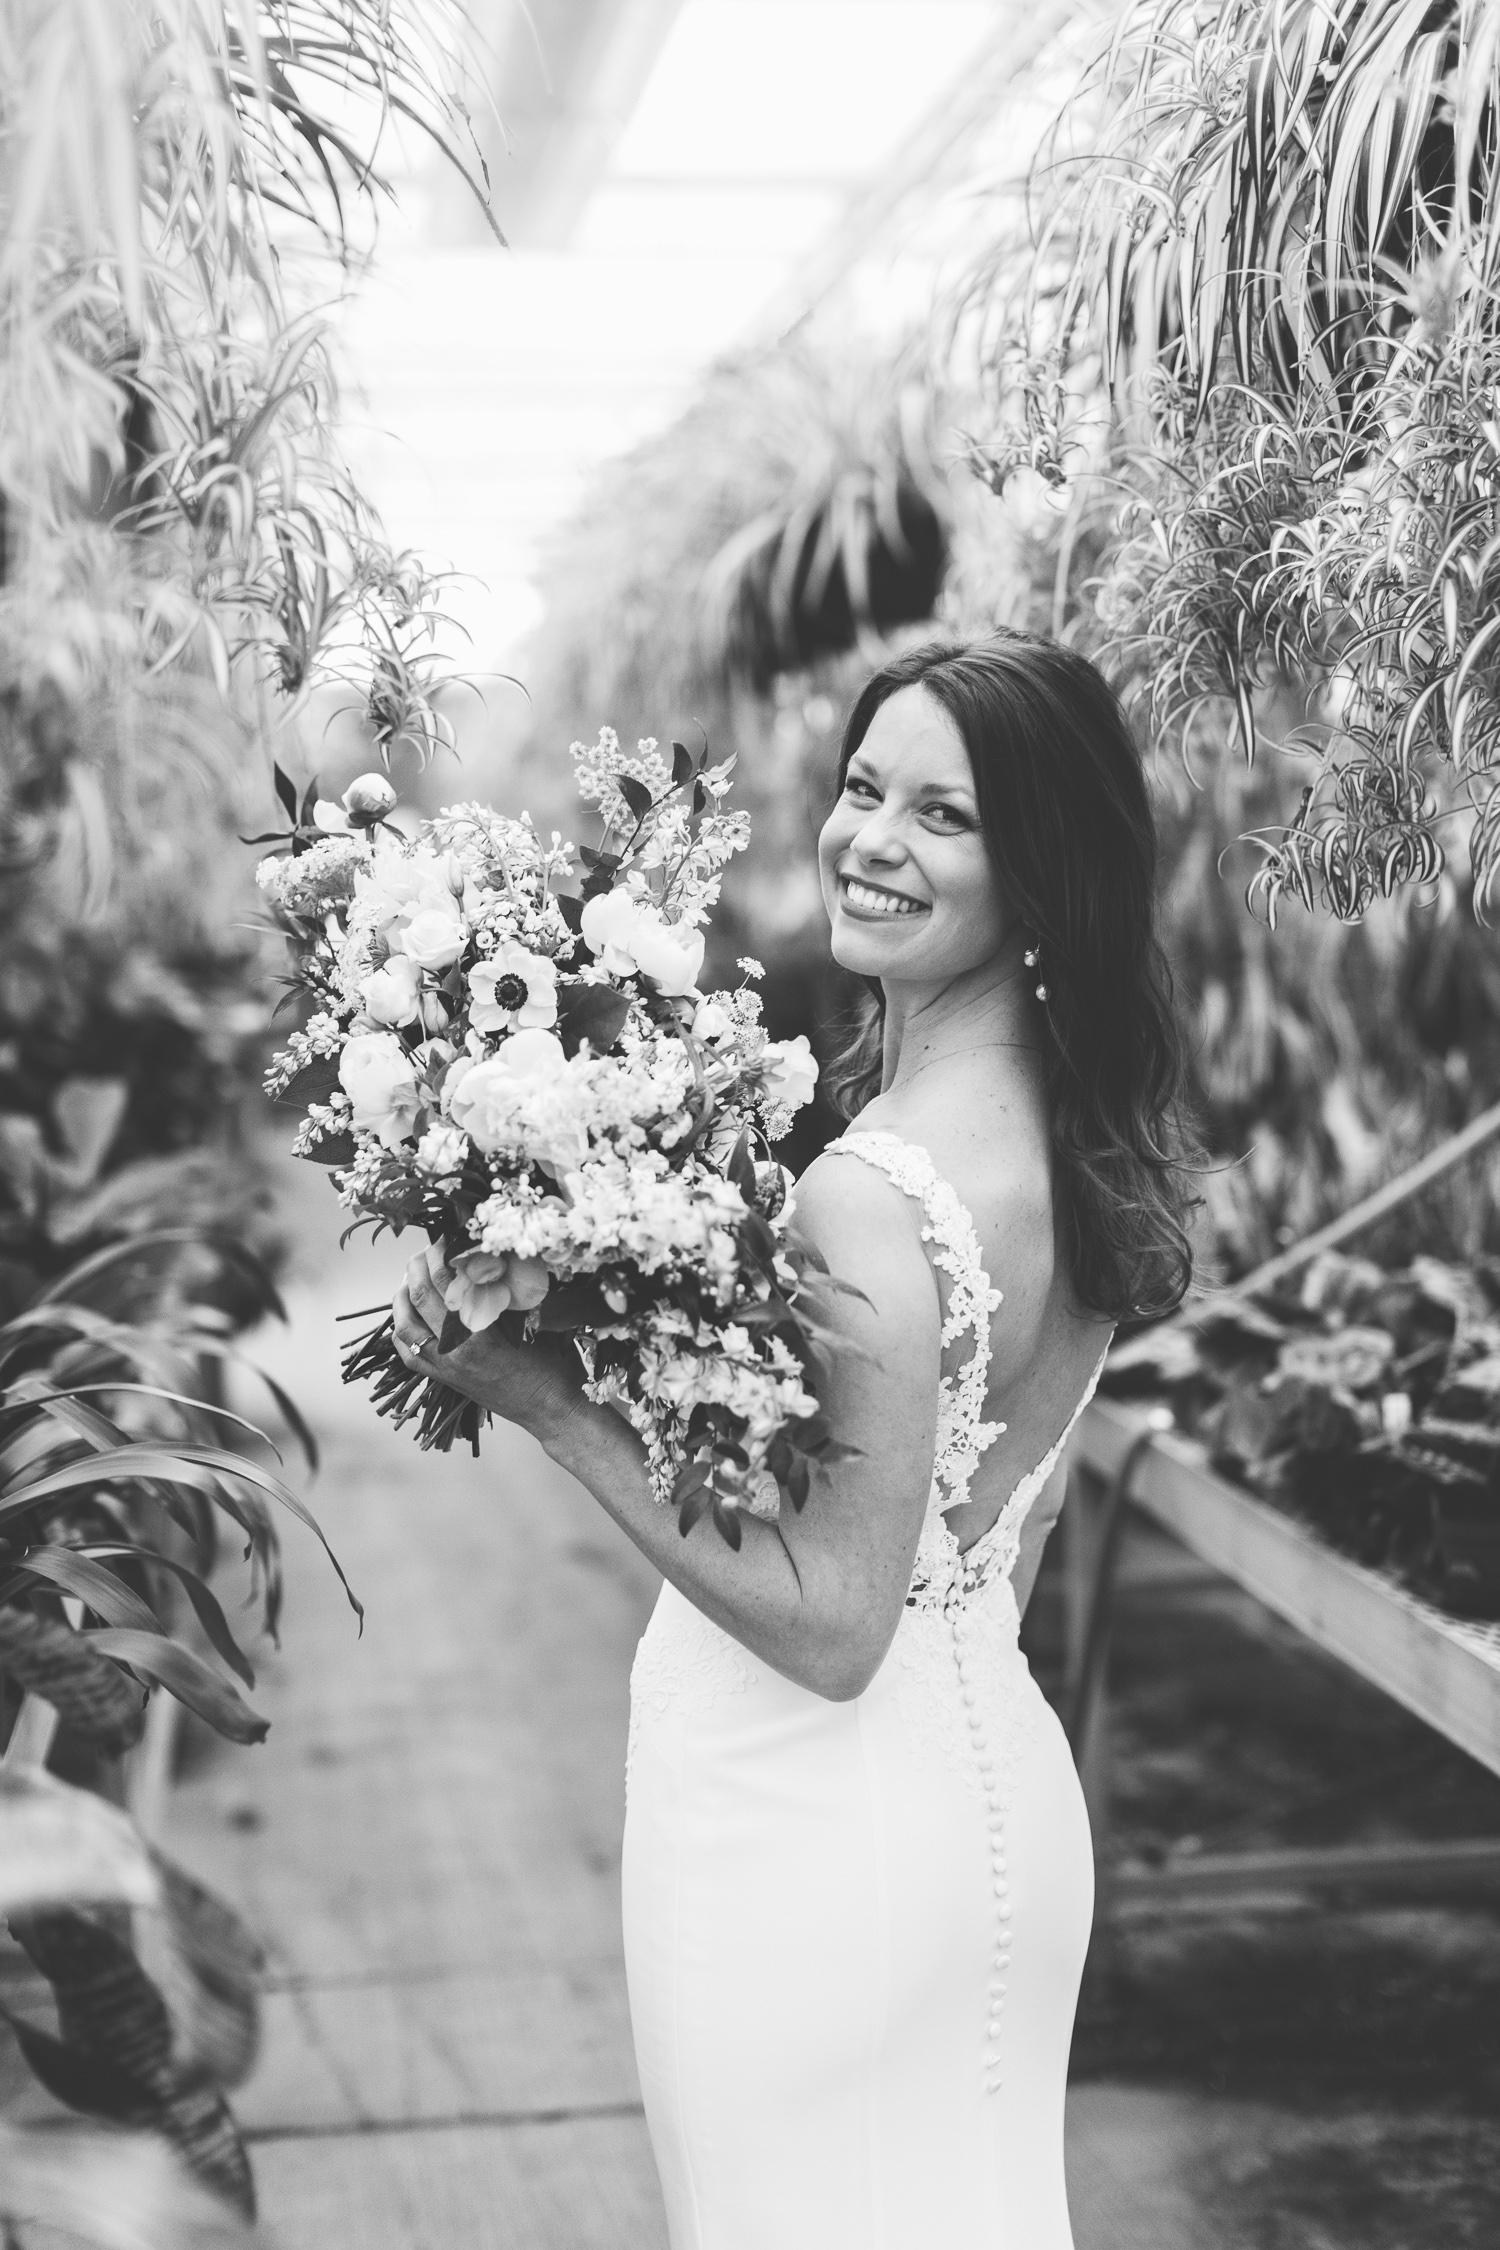 Stanley's Greenhouse Bridal Portraits // Knoxville Portrait Photographer, Suzy Collins